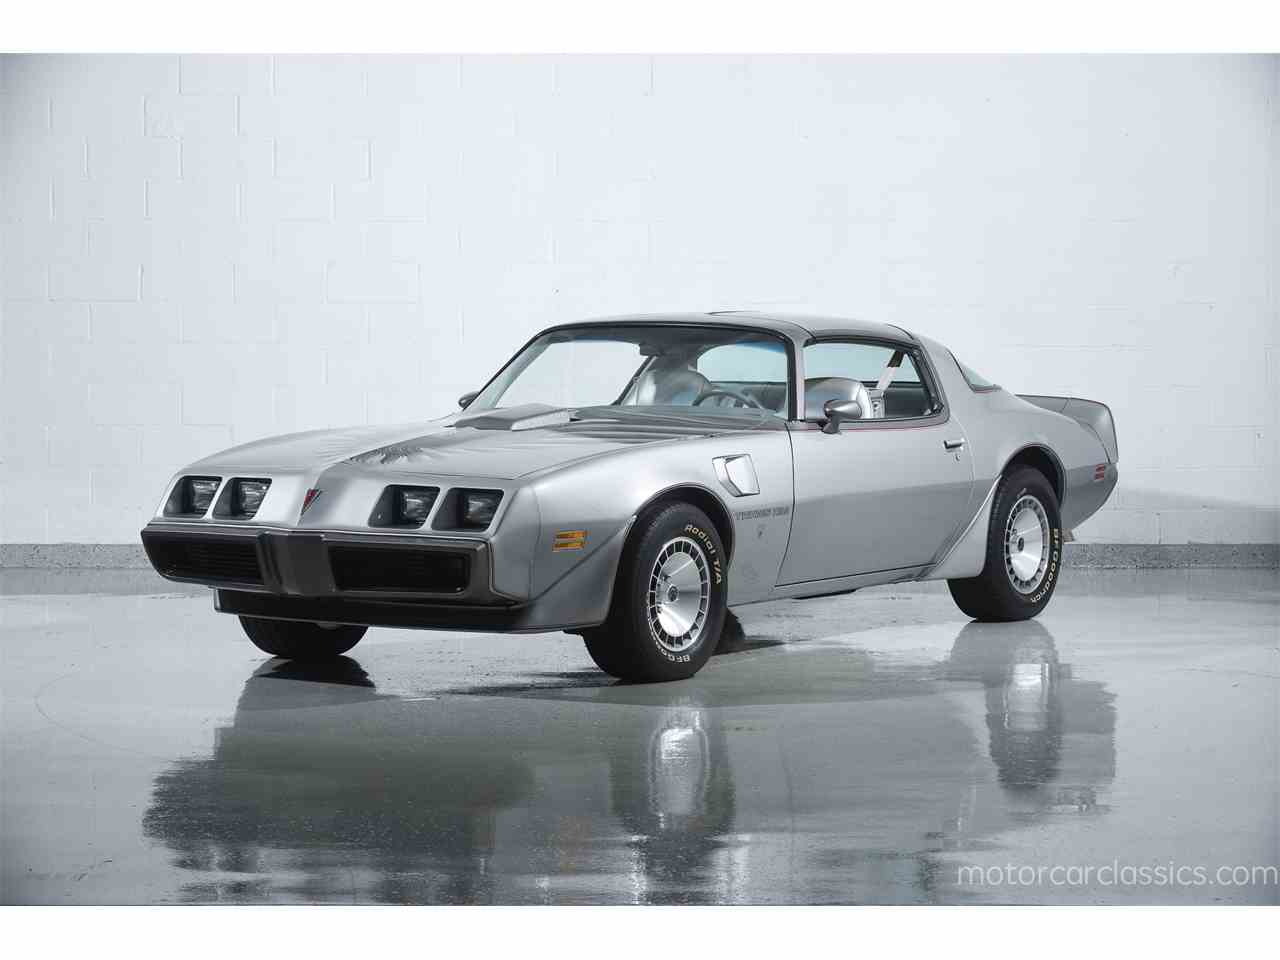 Large Picture of '79 Pontiac Firebird Trans Am Offered by Motorcar Classics - MBN8